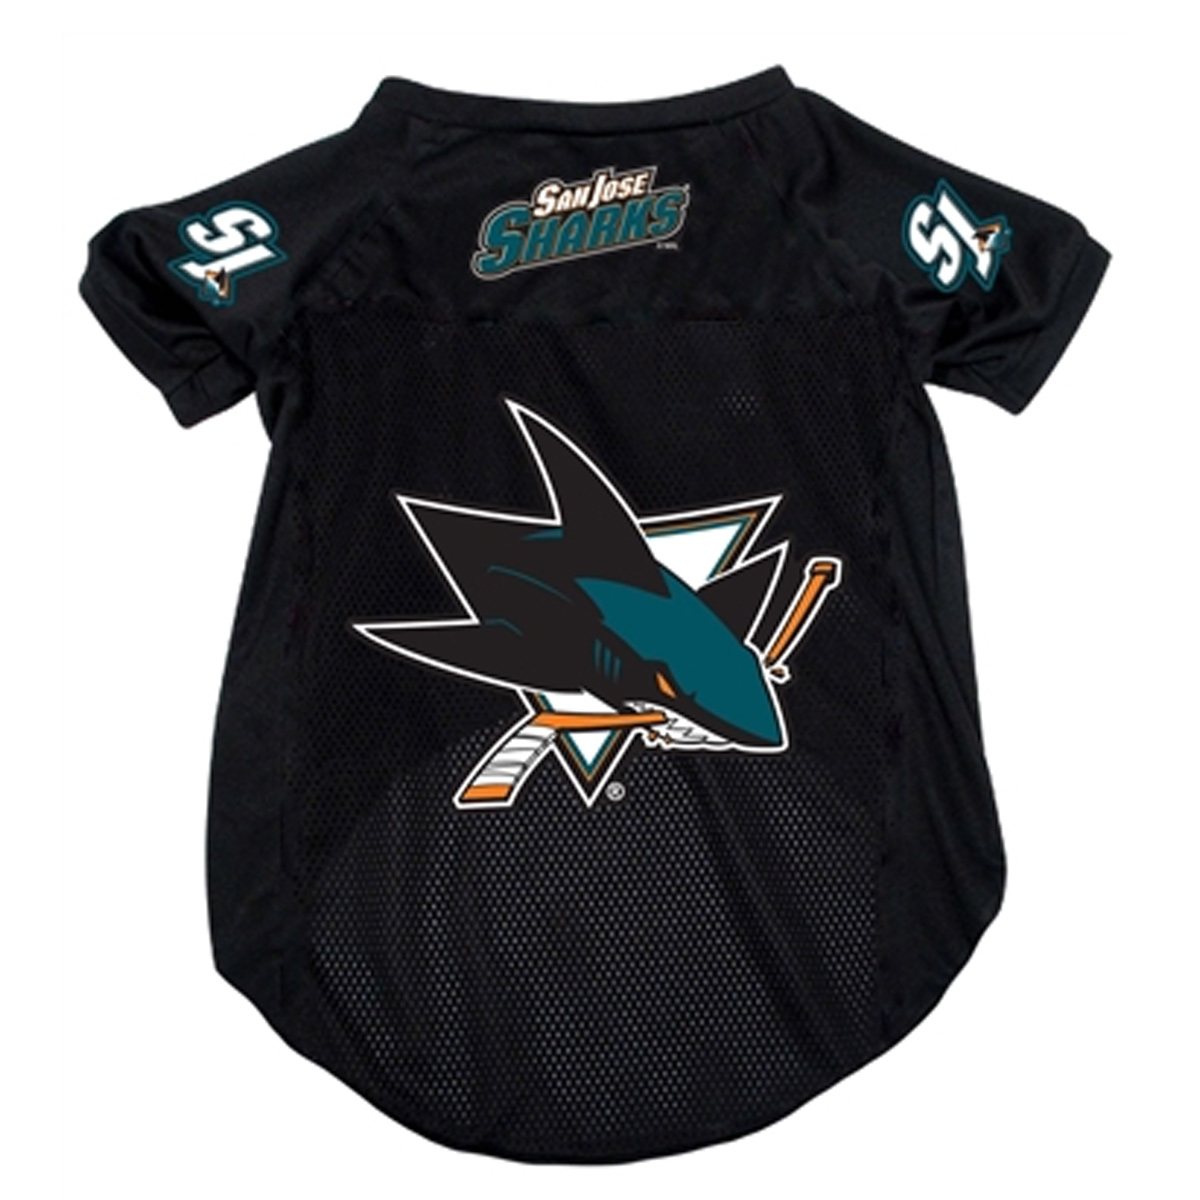 San Jose Sharks Dog Jersey - Black